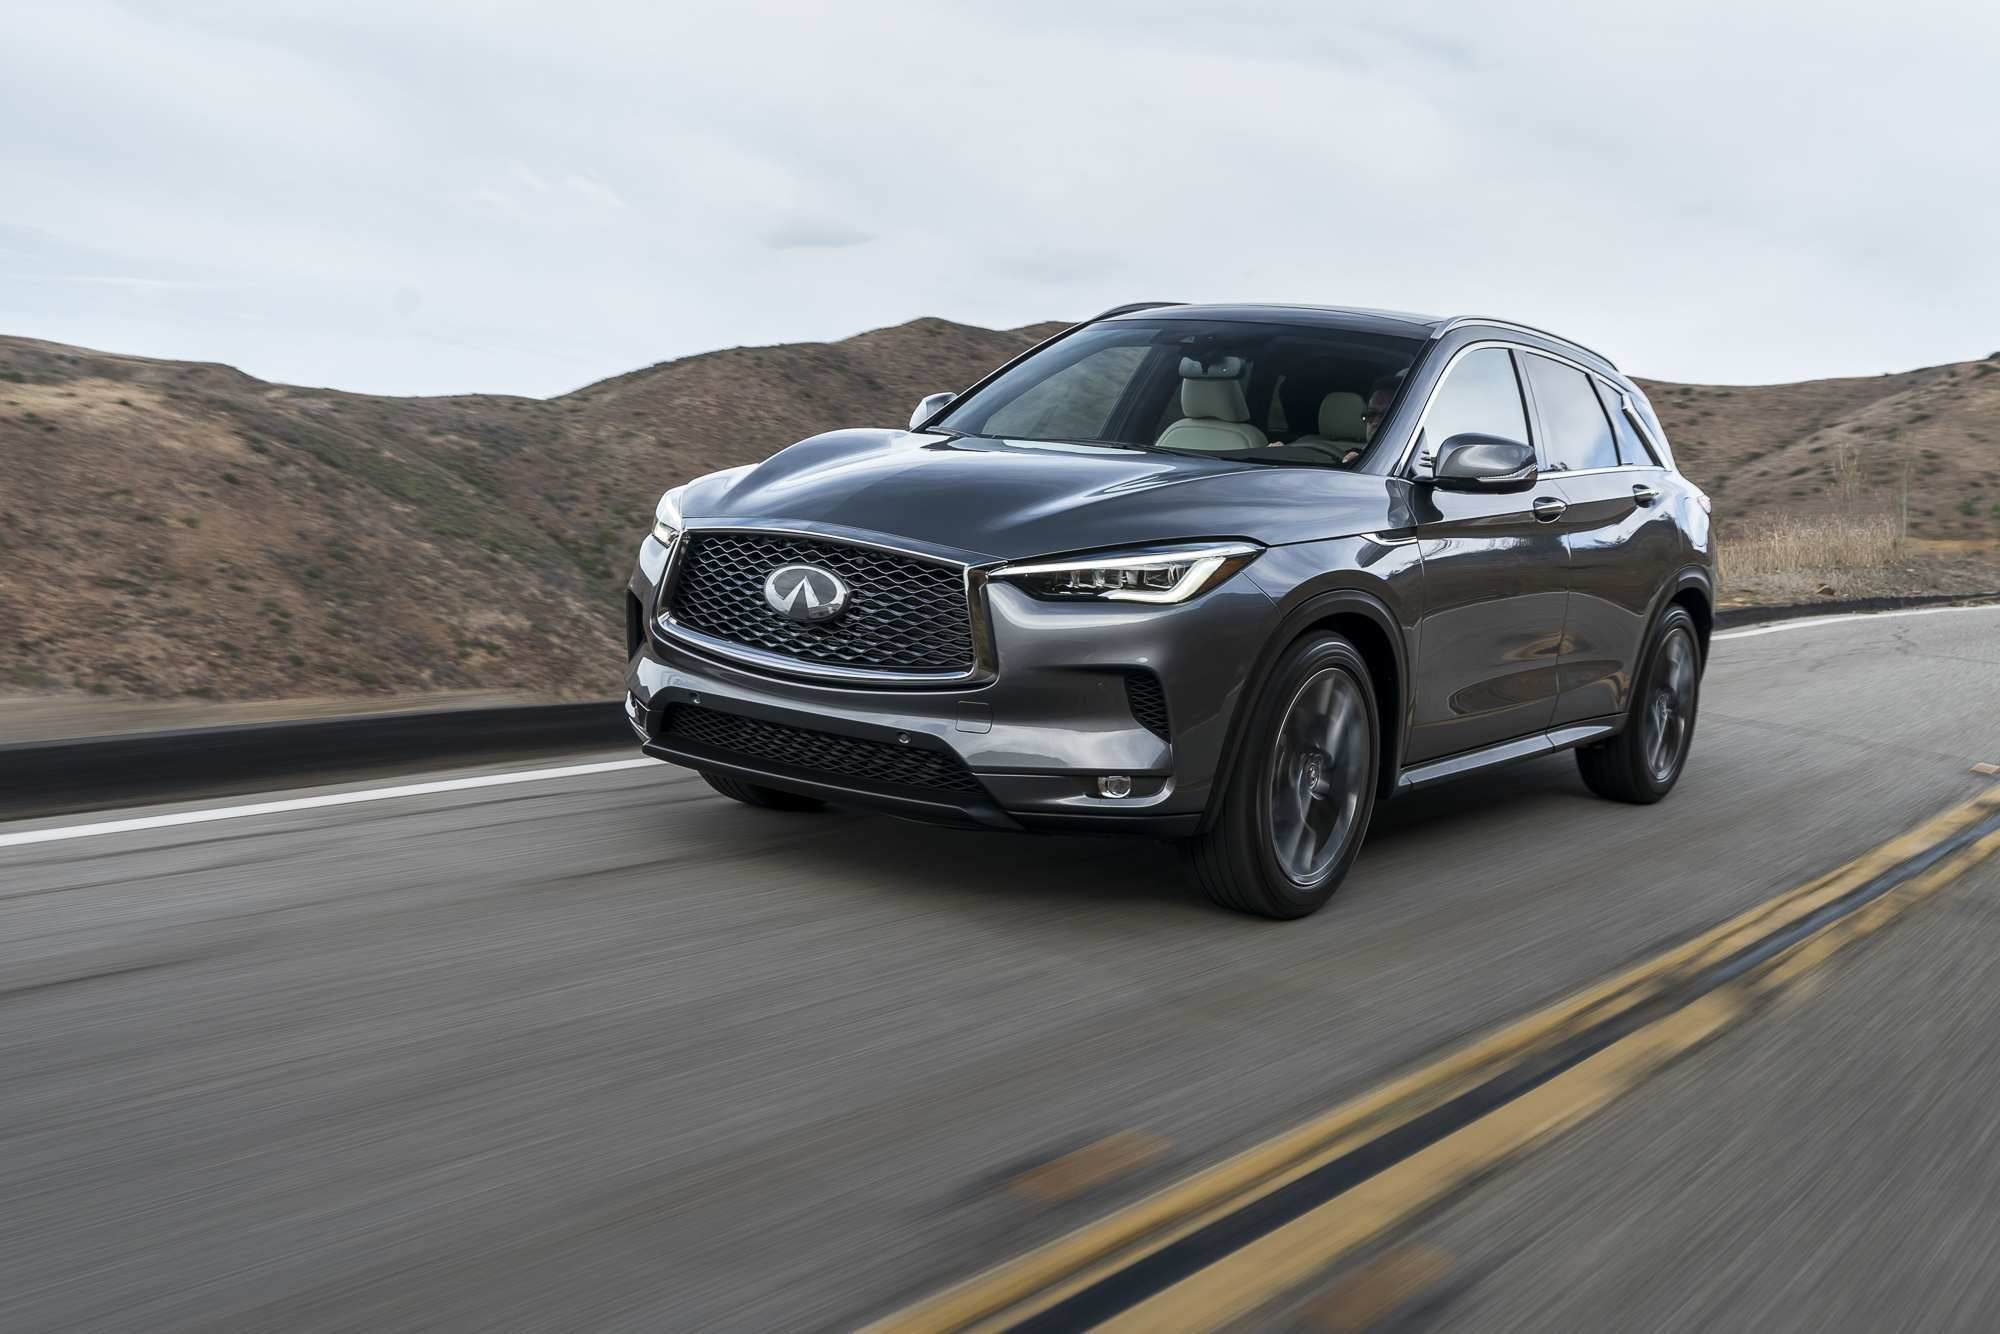 51 Gallery of New 2019 Infiniti Qx50 Horsepower Review Reviews by New 2019 Infiniti Qx50 Horsepower Review